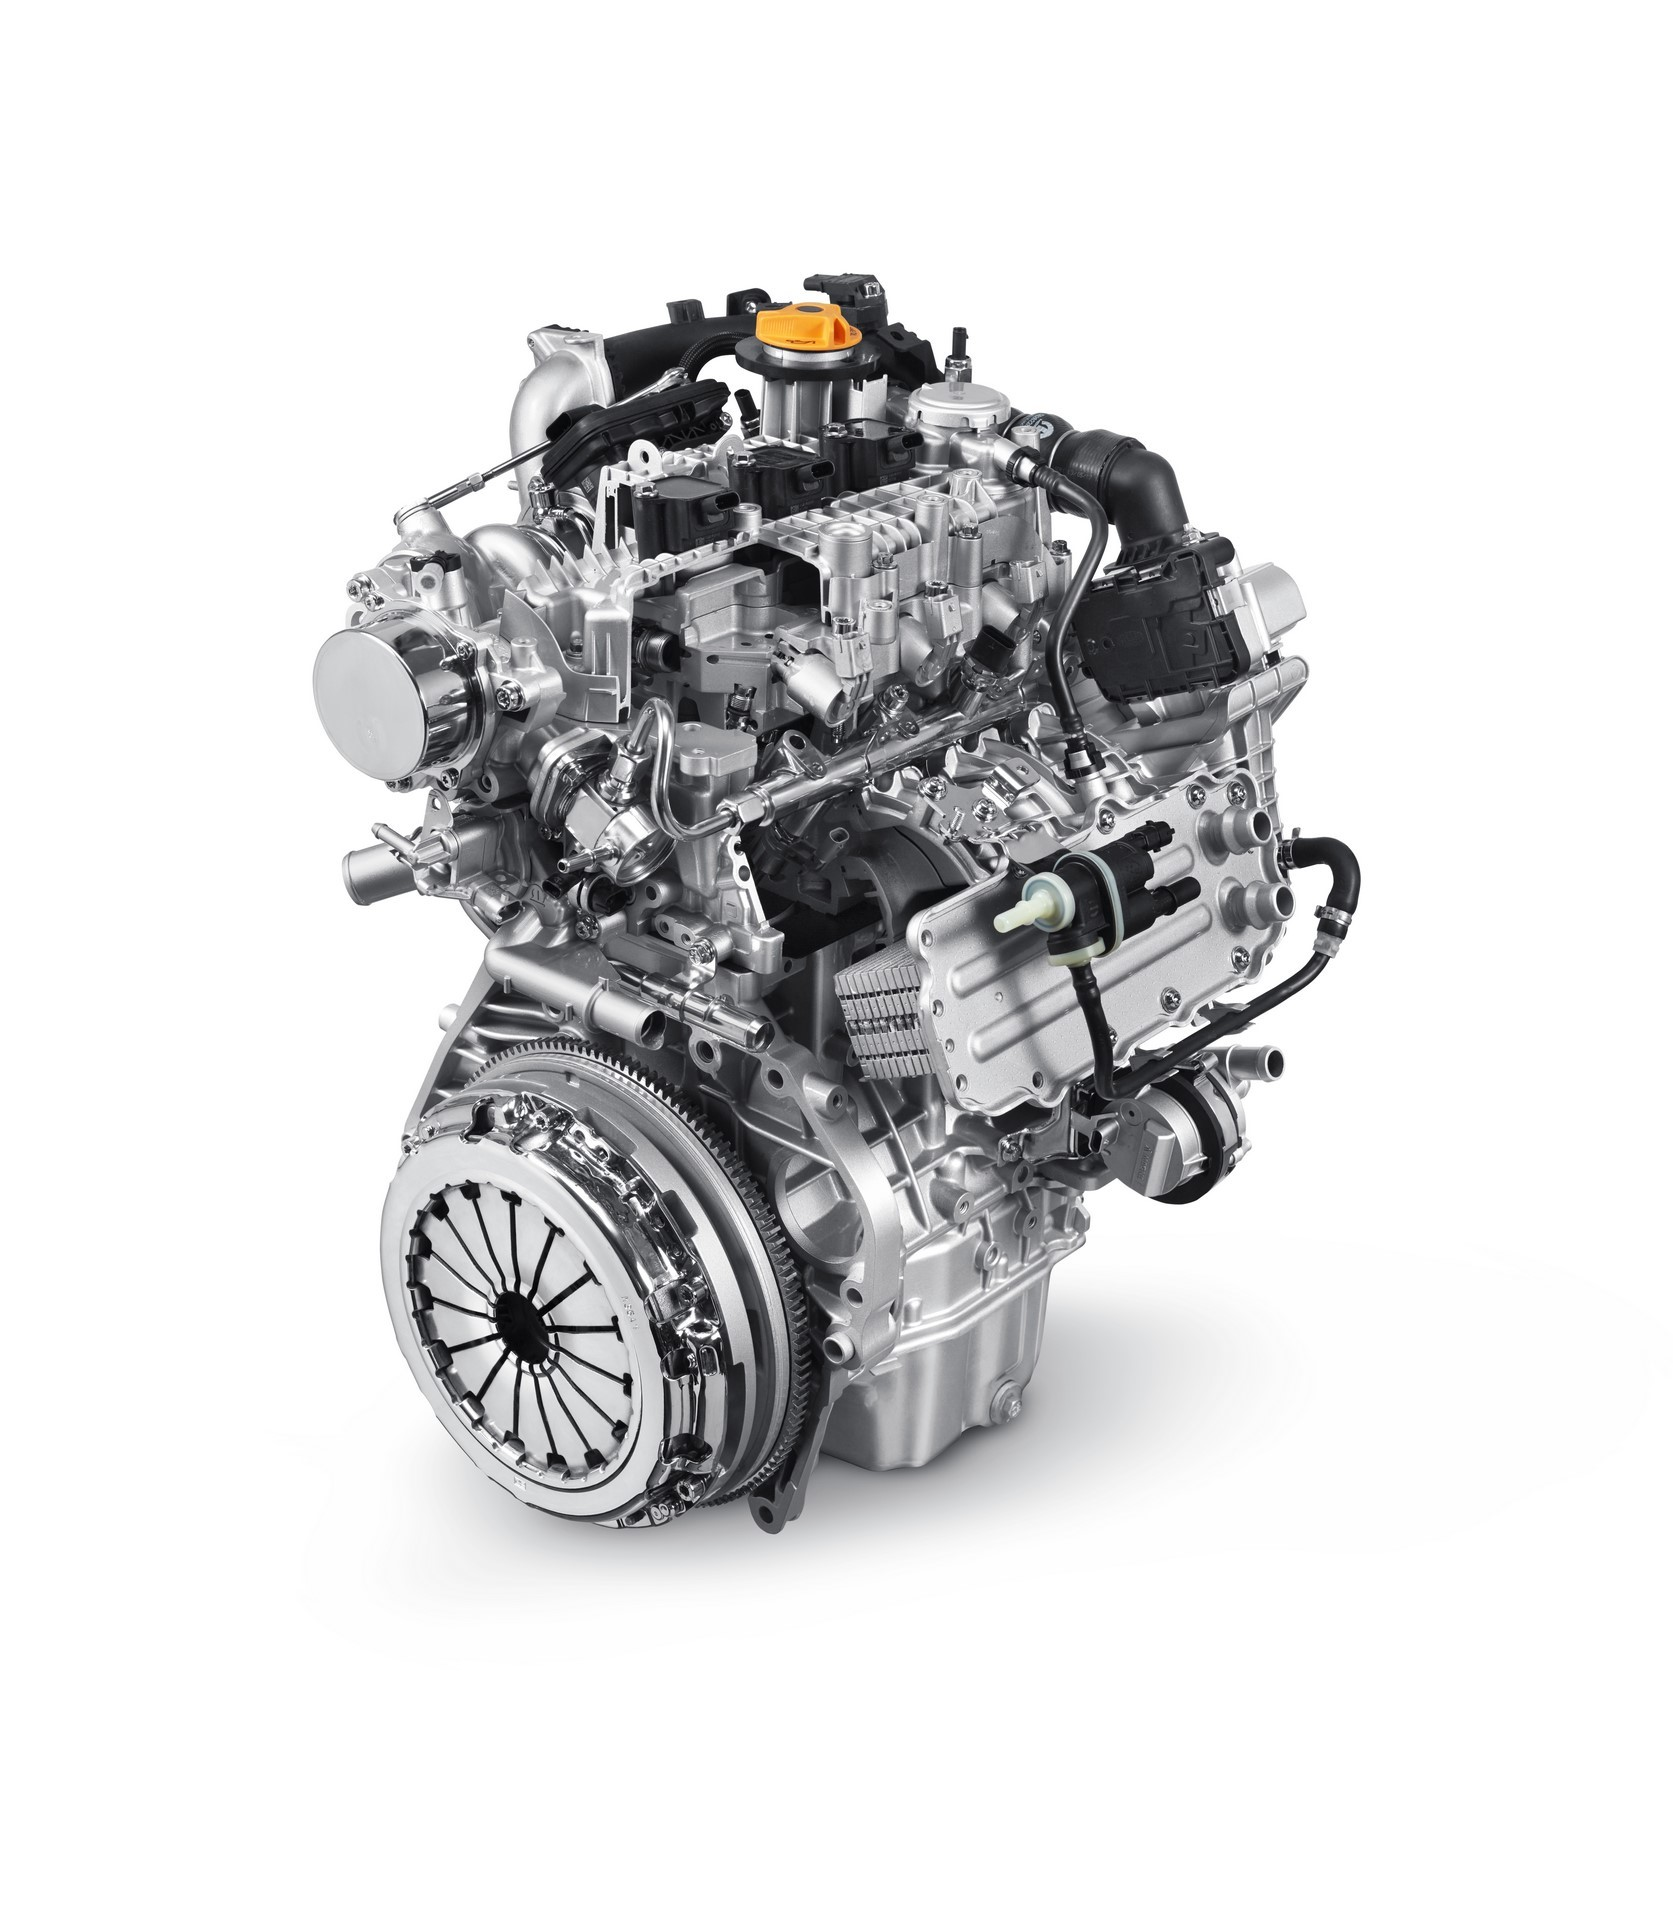 180828_Fiat_New-10L-Turbo-3-cylinder-120HP_15